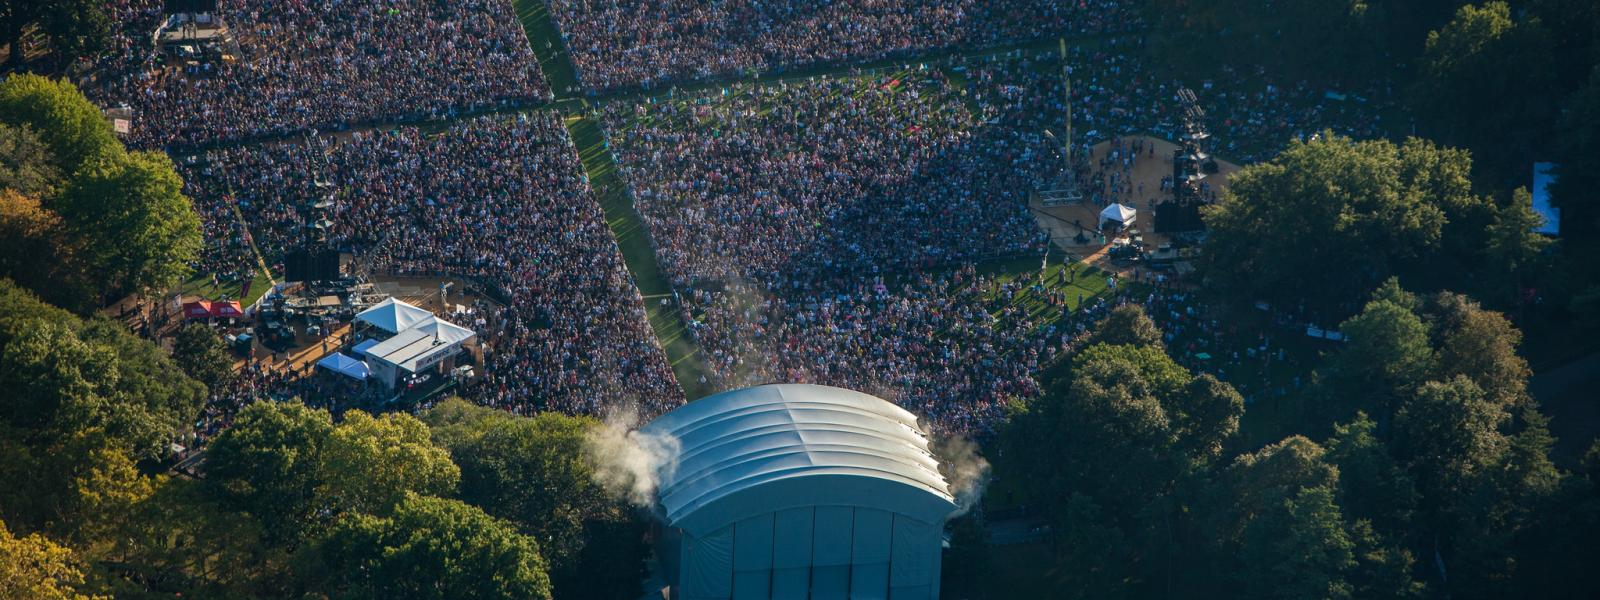 Crowds at the Global Citizen concert in Central Park, New York.